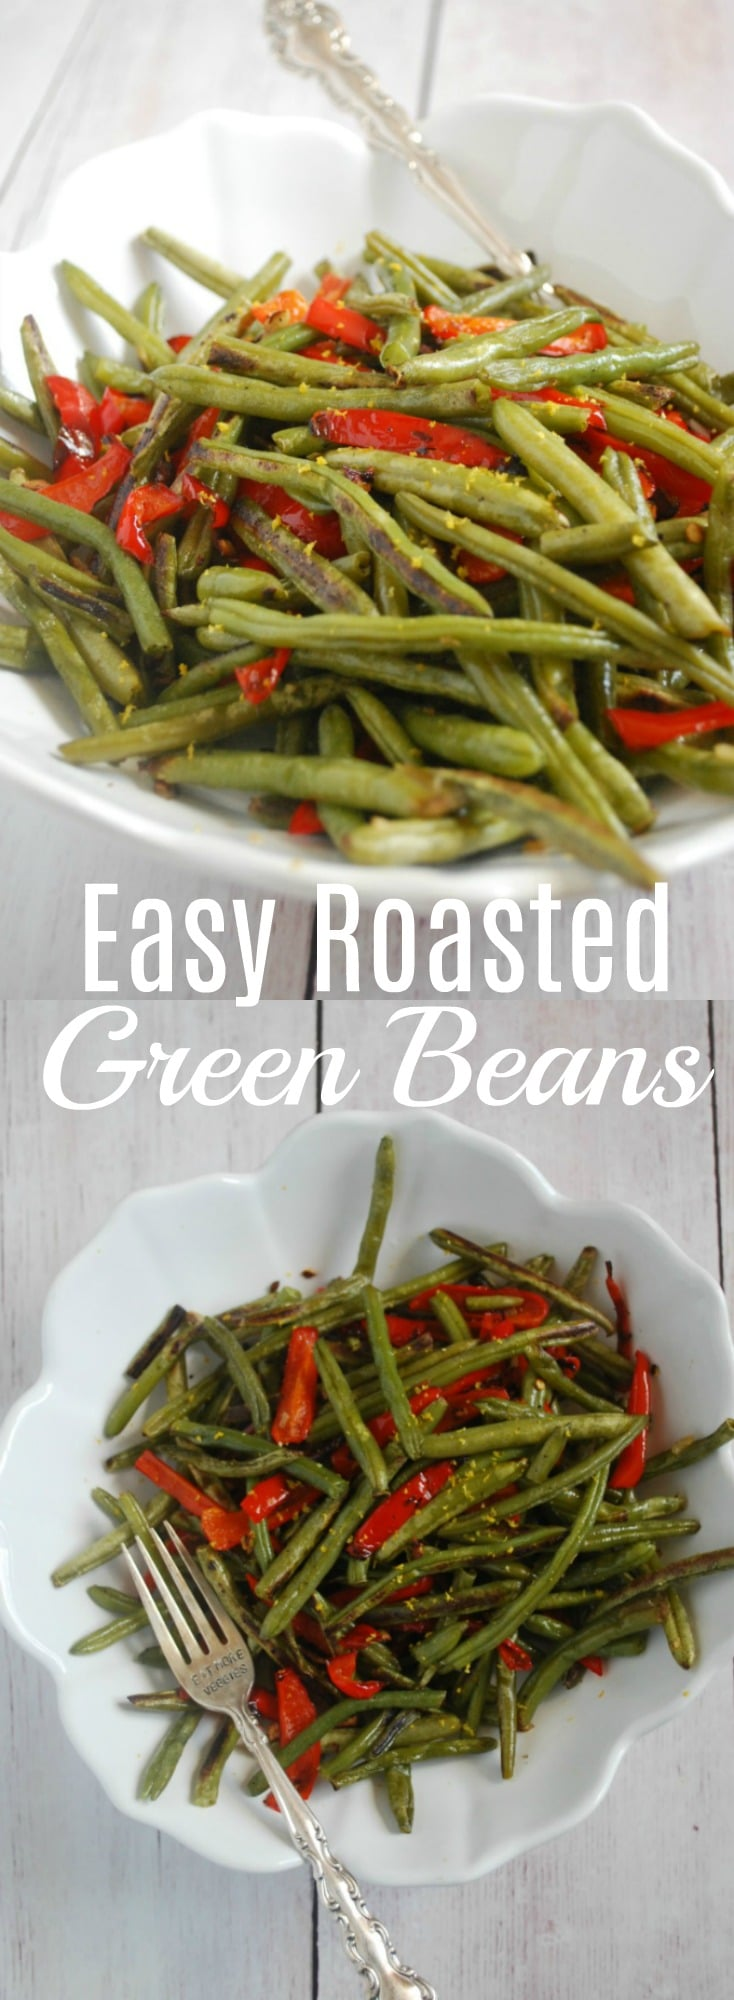 These easy roasted green beans are packed with flavor and so simple and quick to make! They will pair perfectly with any dinner!